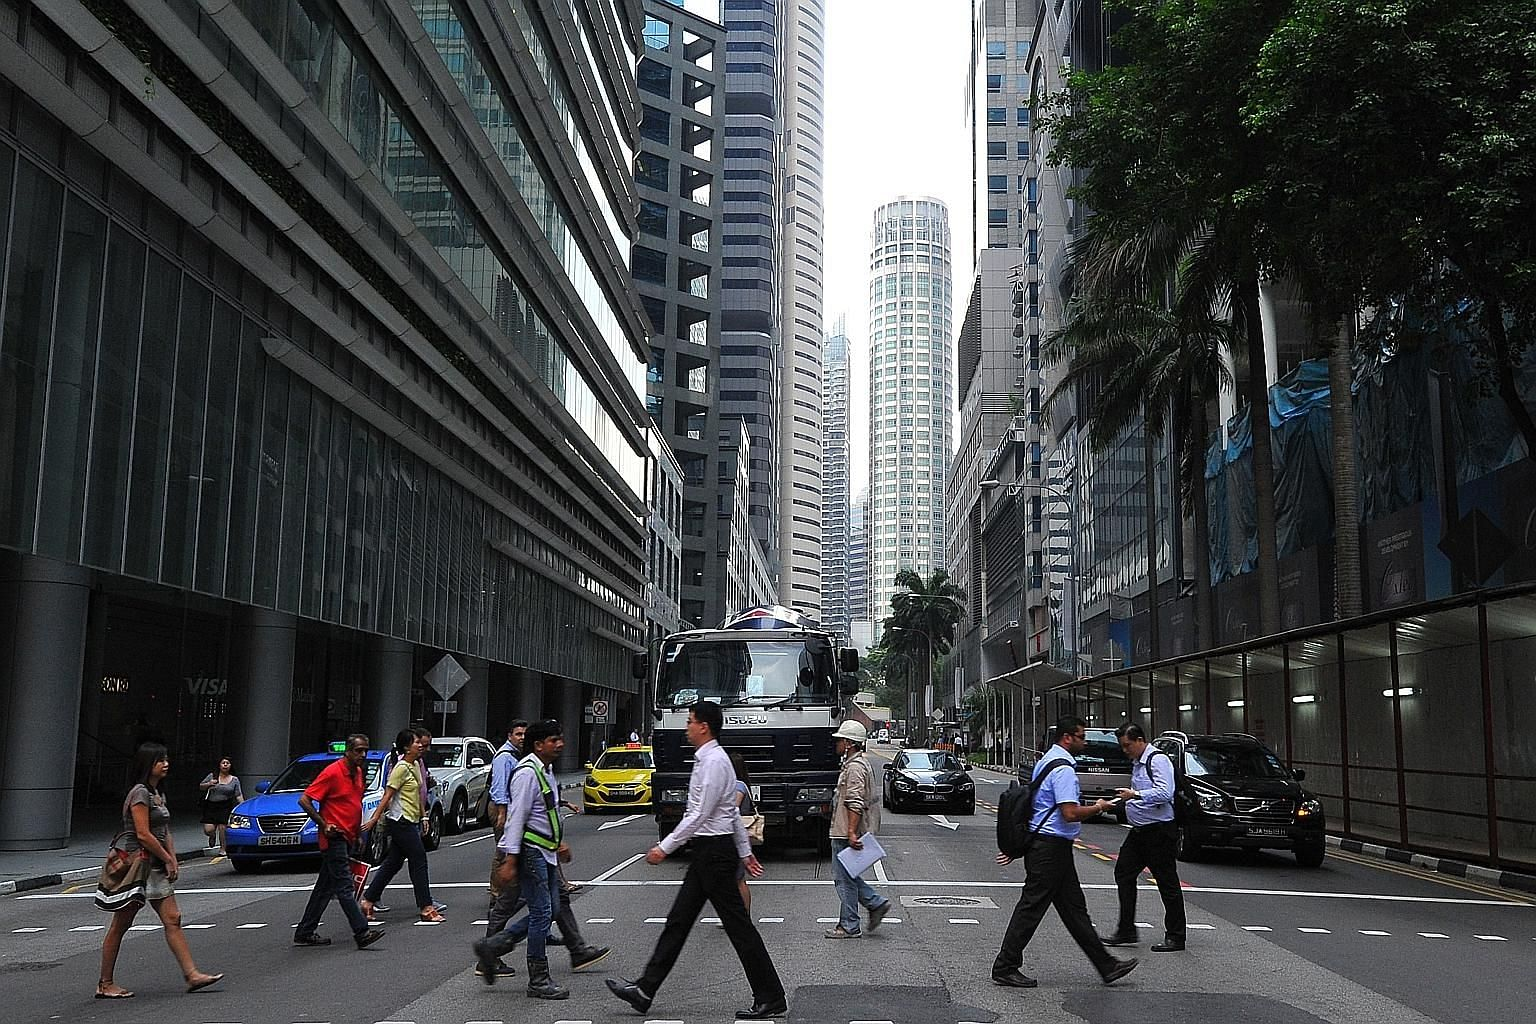 Analysts say a wealth tax could take many forms, ranging from further imposts on property to a capital gains tax or even the re-introduction of estate tax.